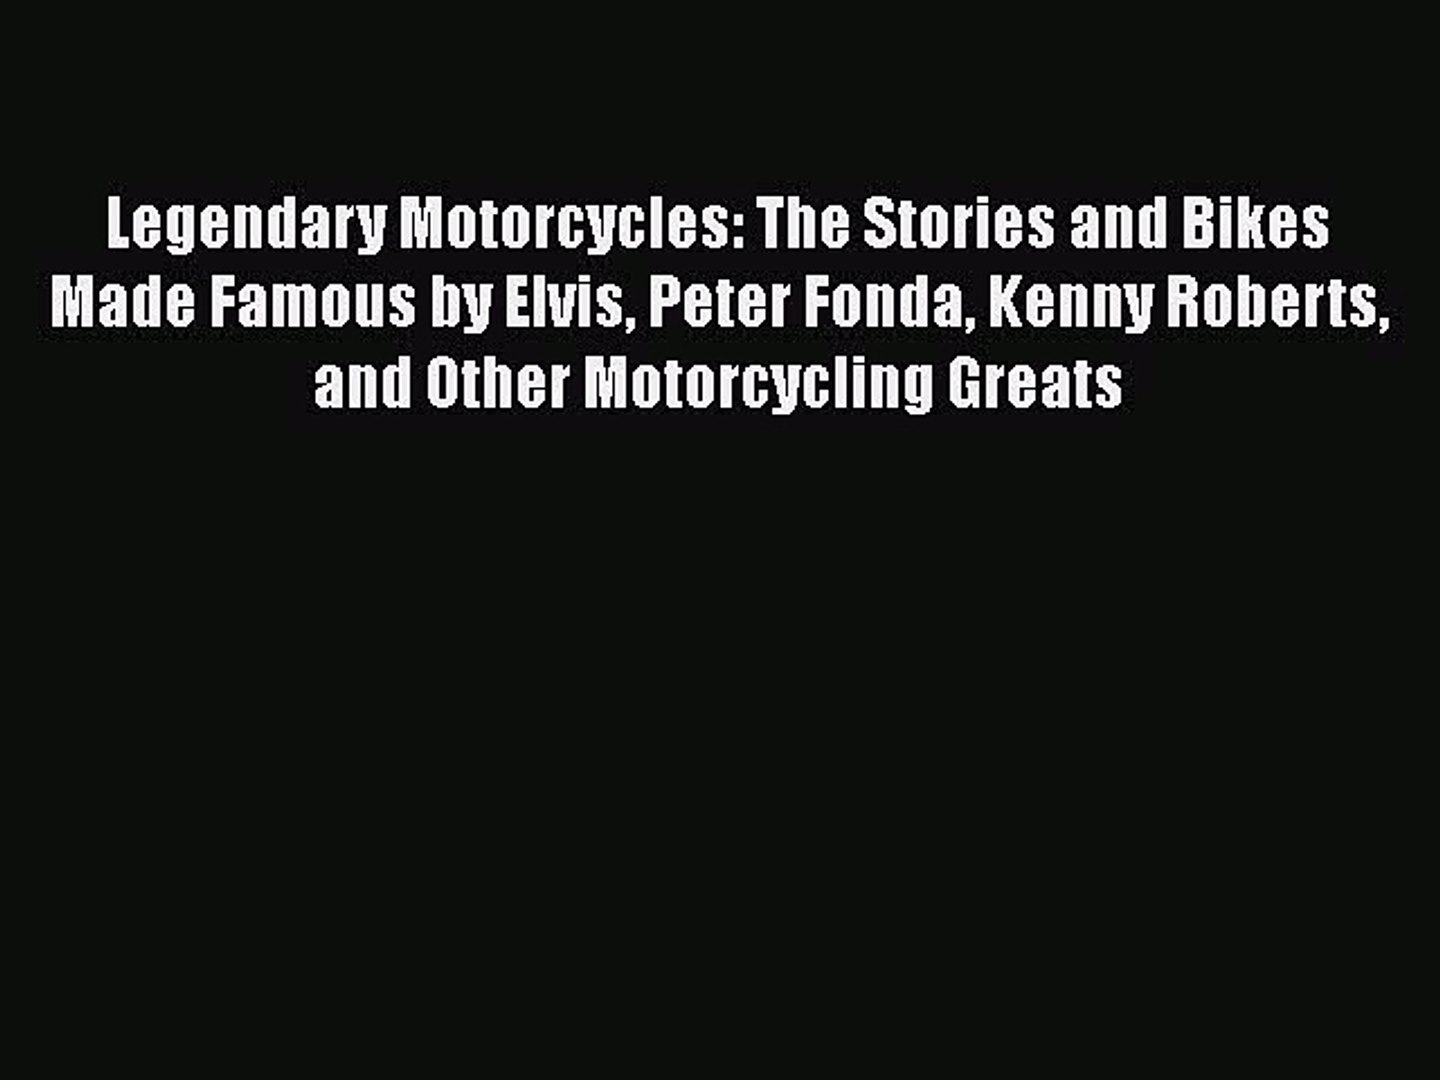 [PDF Download] Legendary Motorcycles: The Stories and Bikes Made Famous by Elvis Peter Fonda